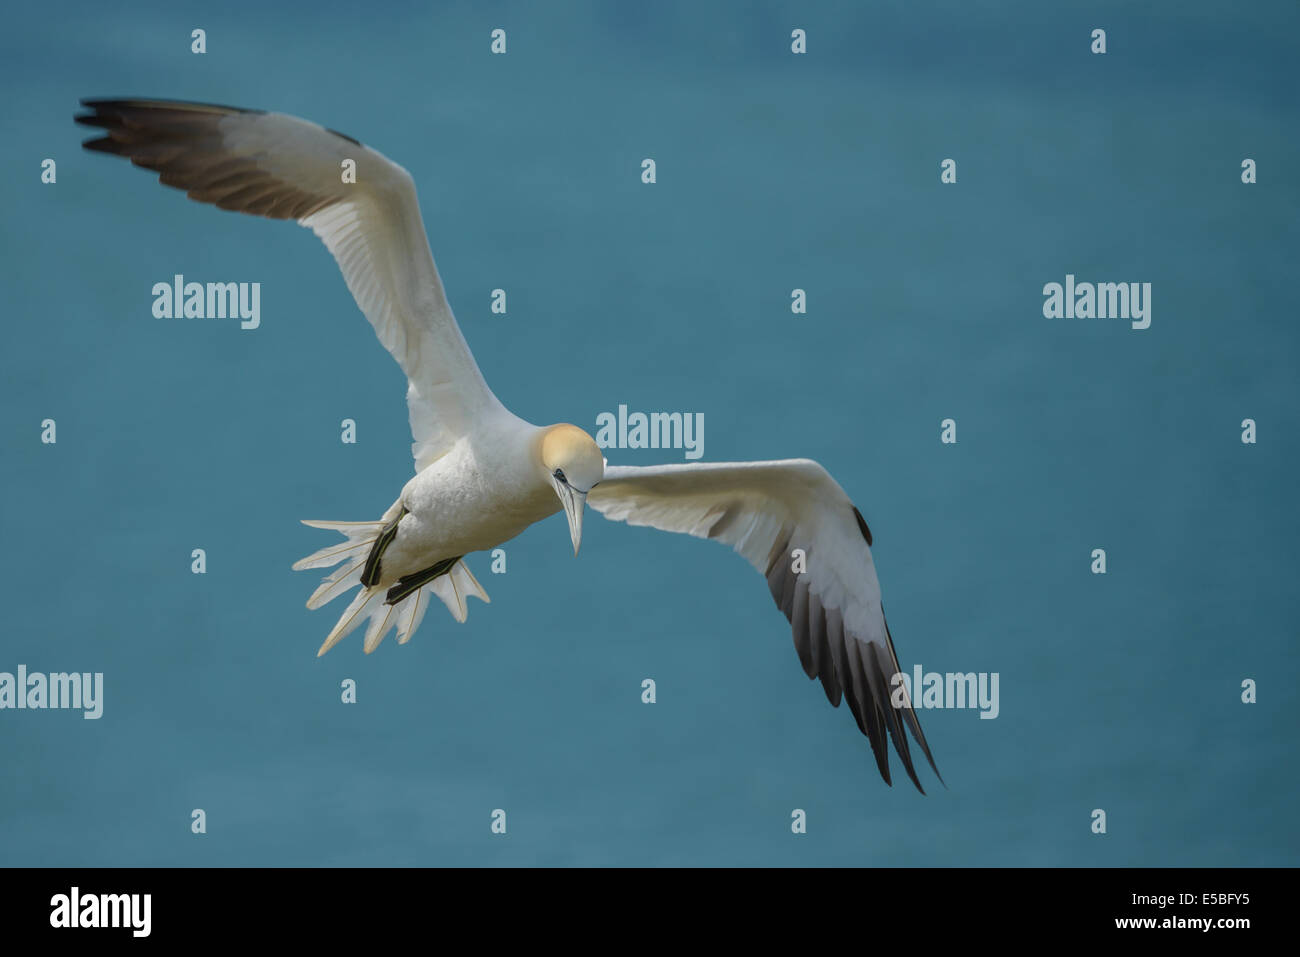 A northern gannet Sula bassana; Morus bassanus) airborne in flight flying above the North Sea; UK. - Stock Image